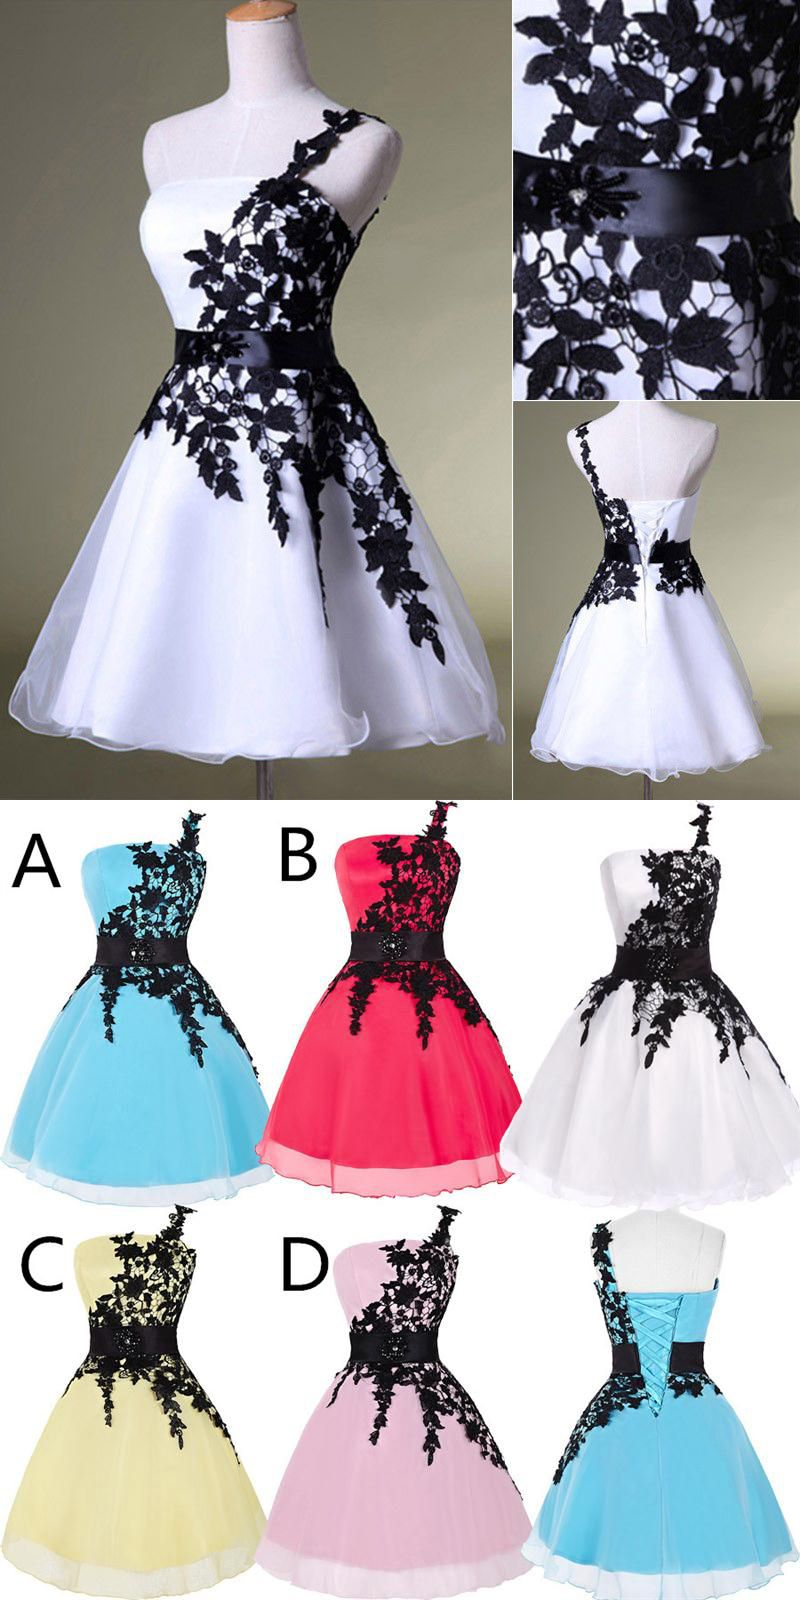 Elegant short ball gown lace prom dresseslace homecoming dresses on